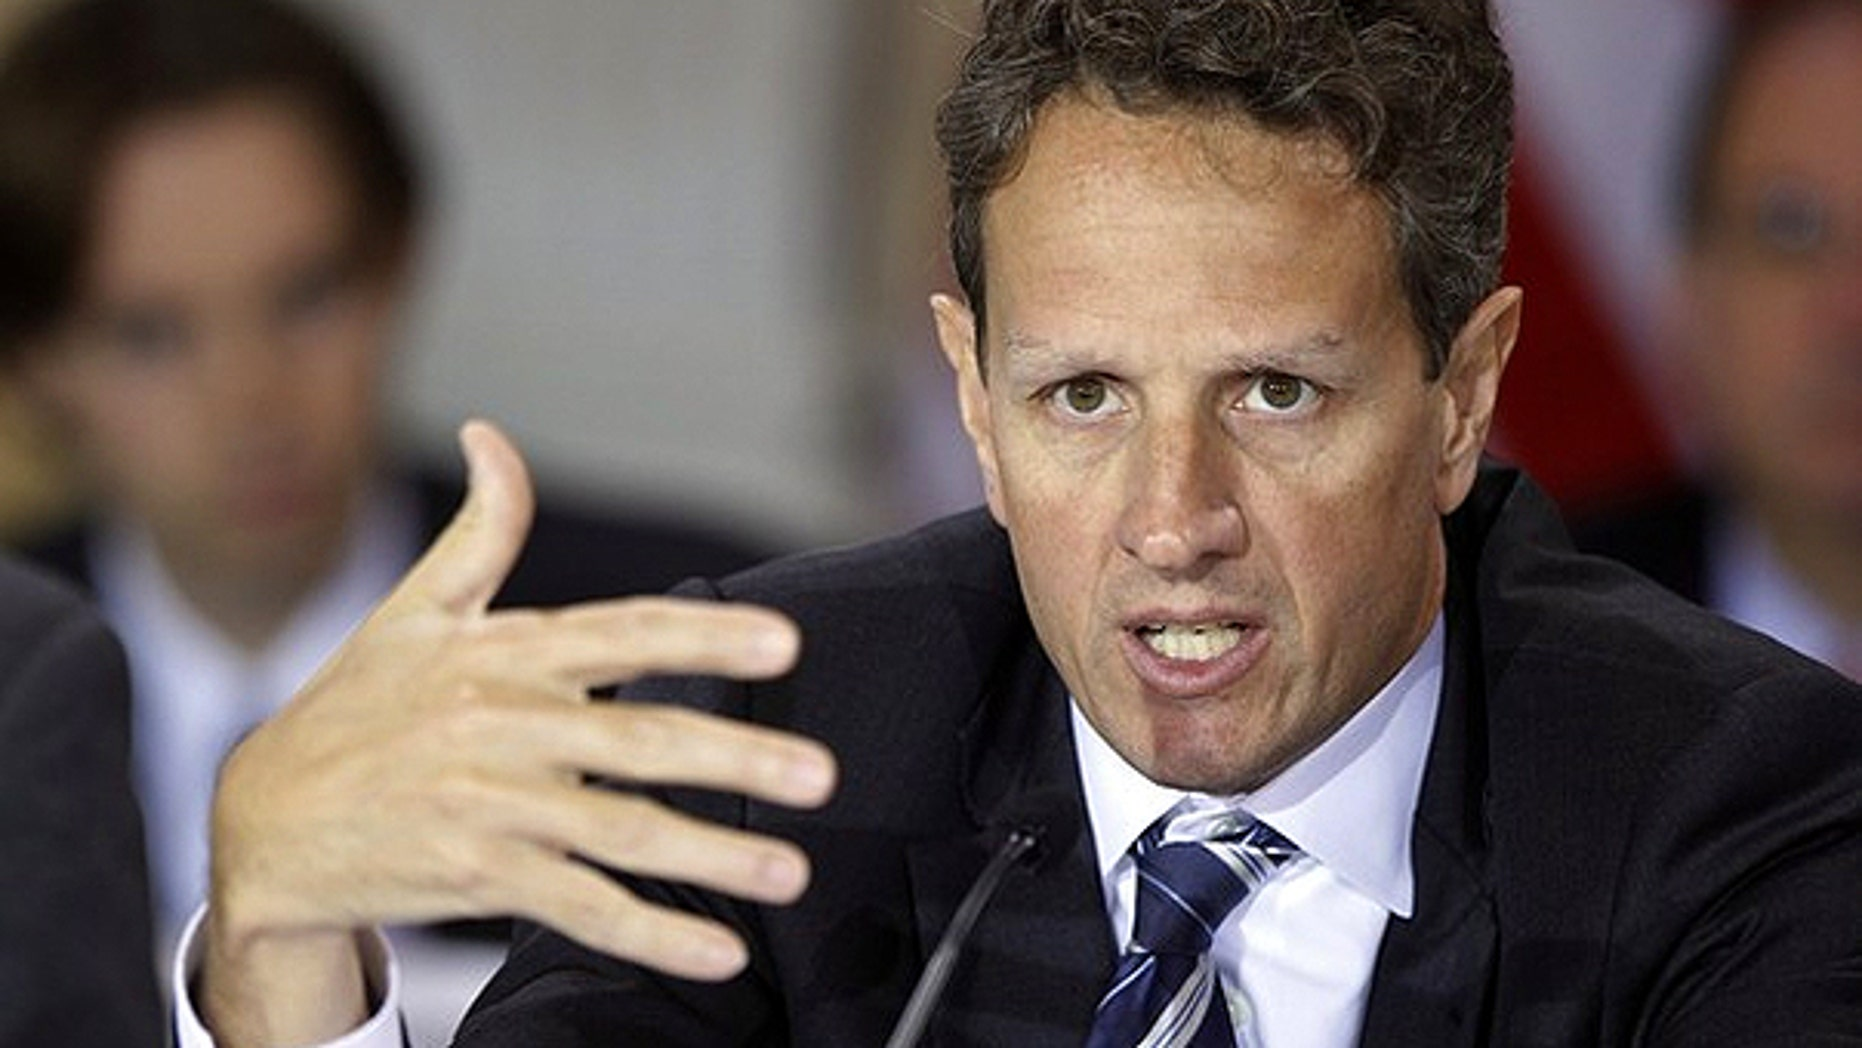 Nov. 23: U.S. Treasury Secretary Tim Geithner speaks at the financial stability oversight council (FSOC) meeting at the Treasury Department in Washington.